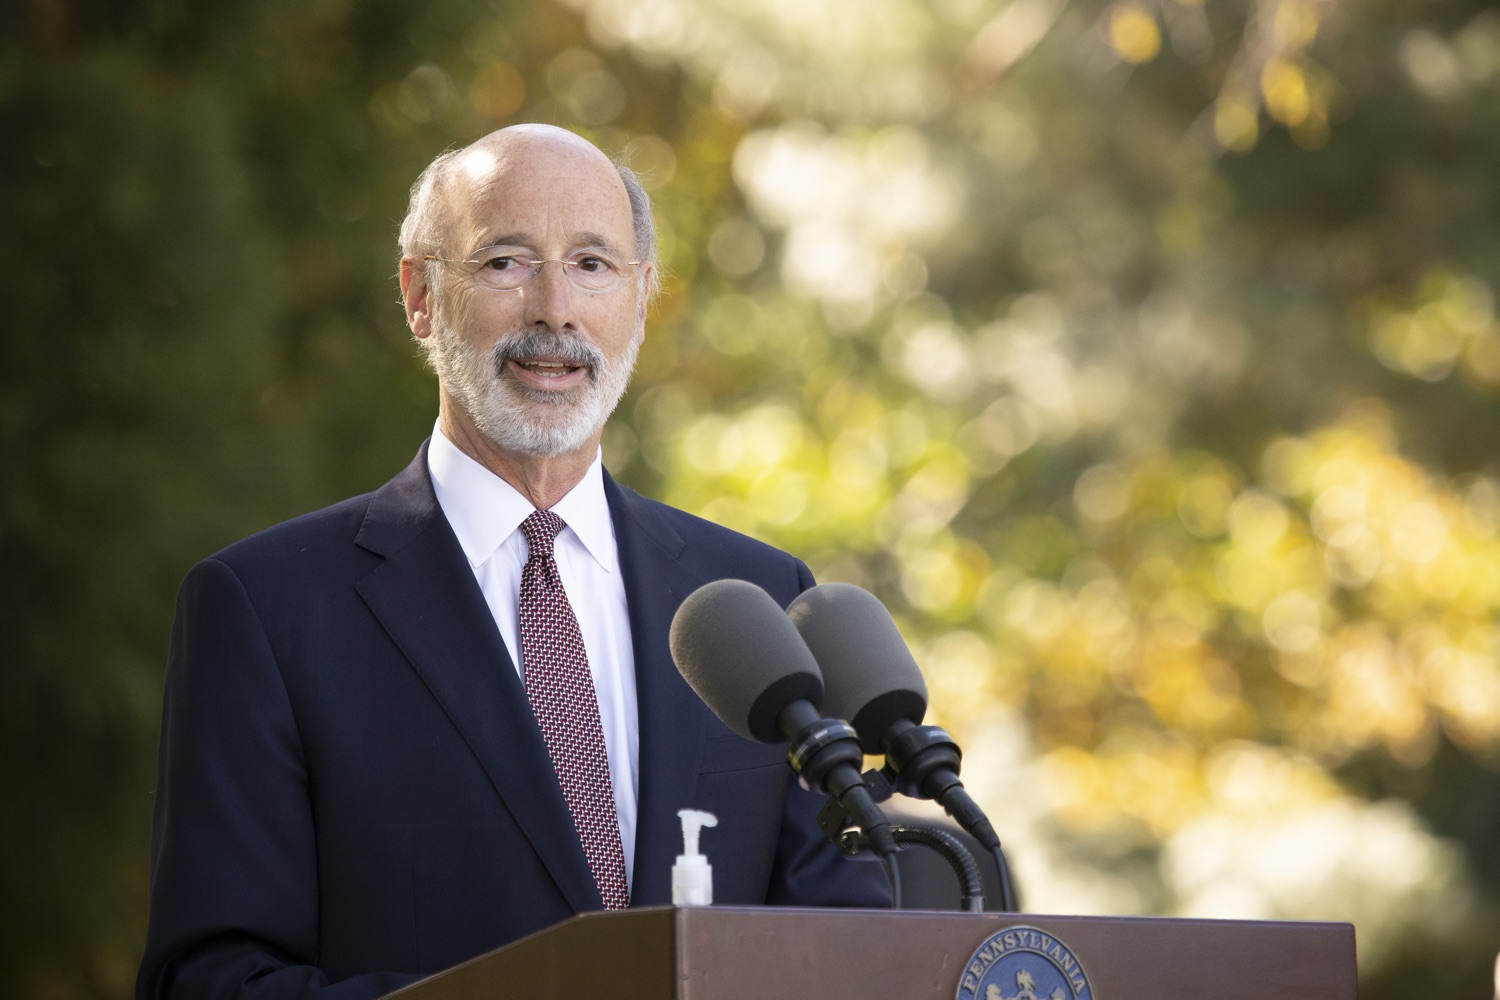 "<a href=""https://filesource.wostreaming.net/commonwealthofpa/photo/18321_gov_aca_dz_017.jpg"" target=""_blank"">⇣ Download Photo<br></a>Pennsylvania Governor Tom Wolf speaking to the press.  As the number of positive COVID-19 cases rise in Pennsylvania and as we enter flu season, protecting the Affordable Care Act (ACA) and ensuring that all Pennsylvanians have access to health coverage are more important than ever, Governor Tom Wolf said today in Chester County. The governor was joined by local elected officials and representatives from local health care organizations. Landenberg, PA  October 15, 2020"